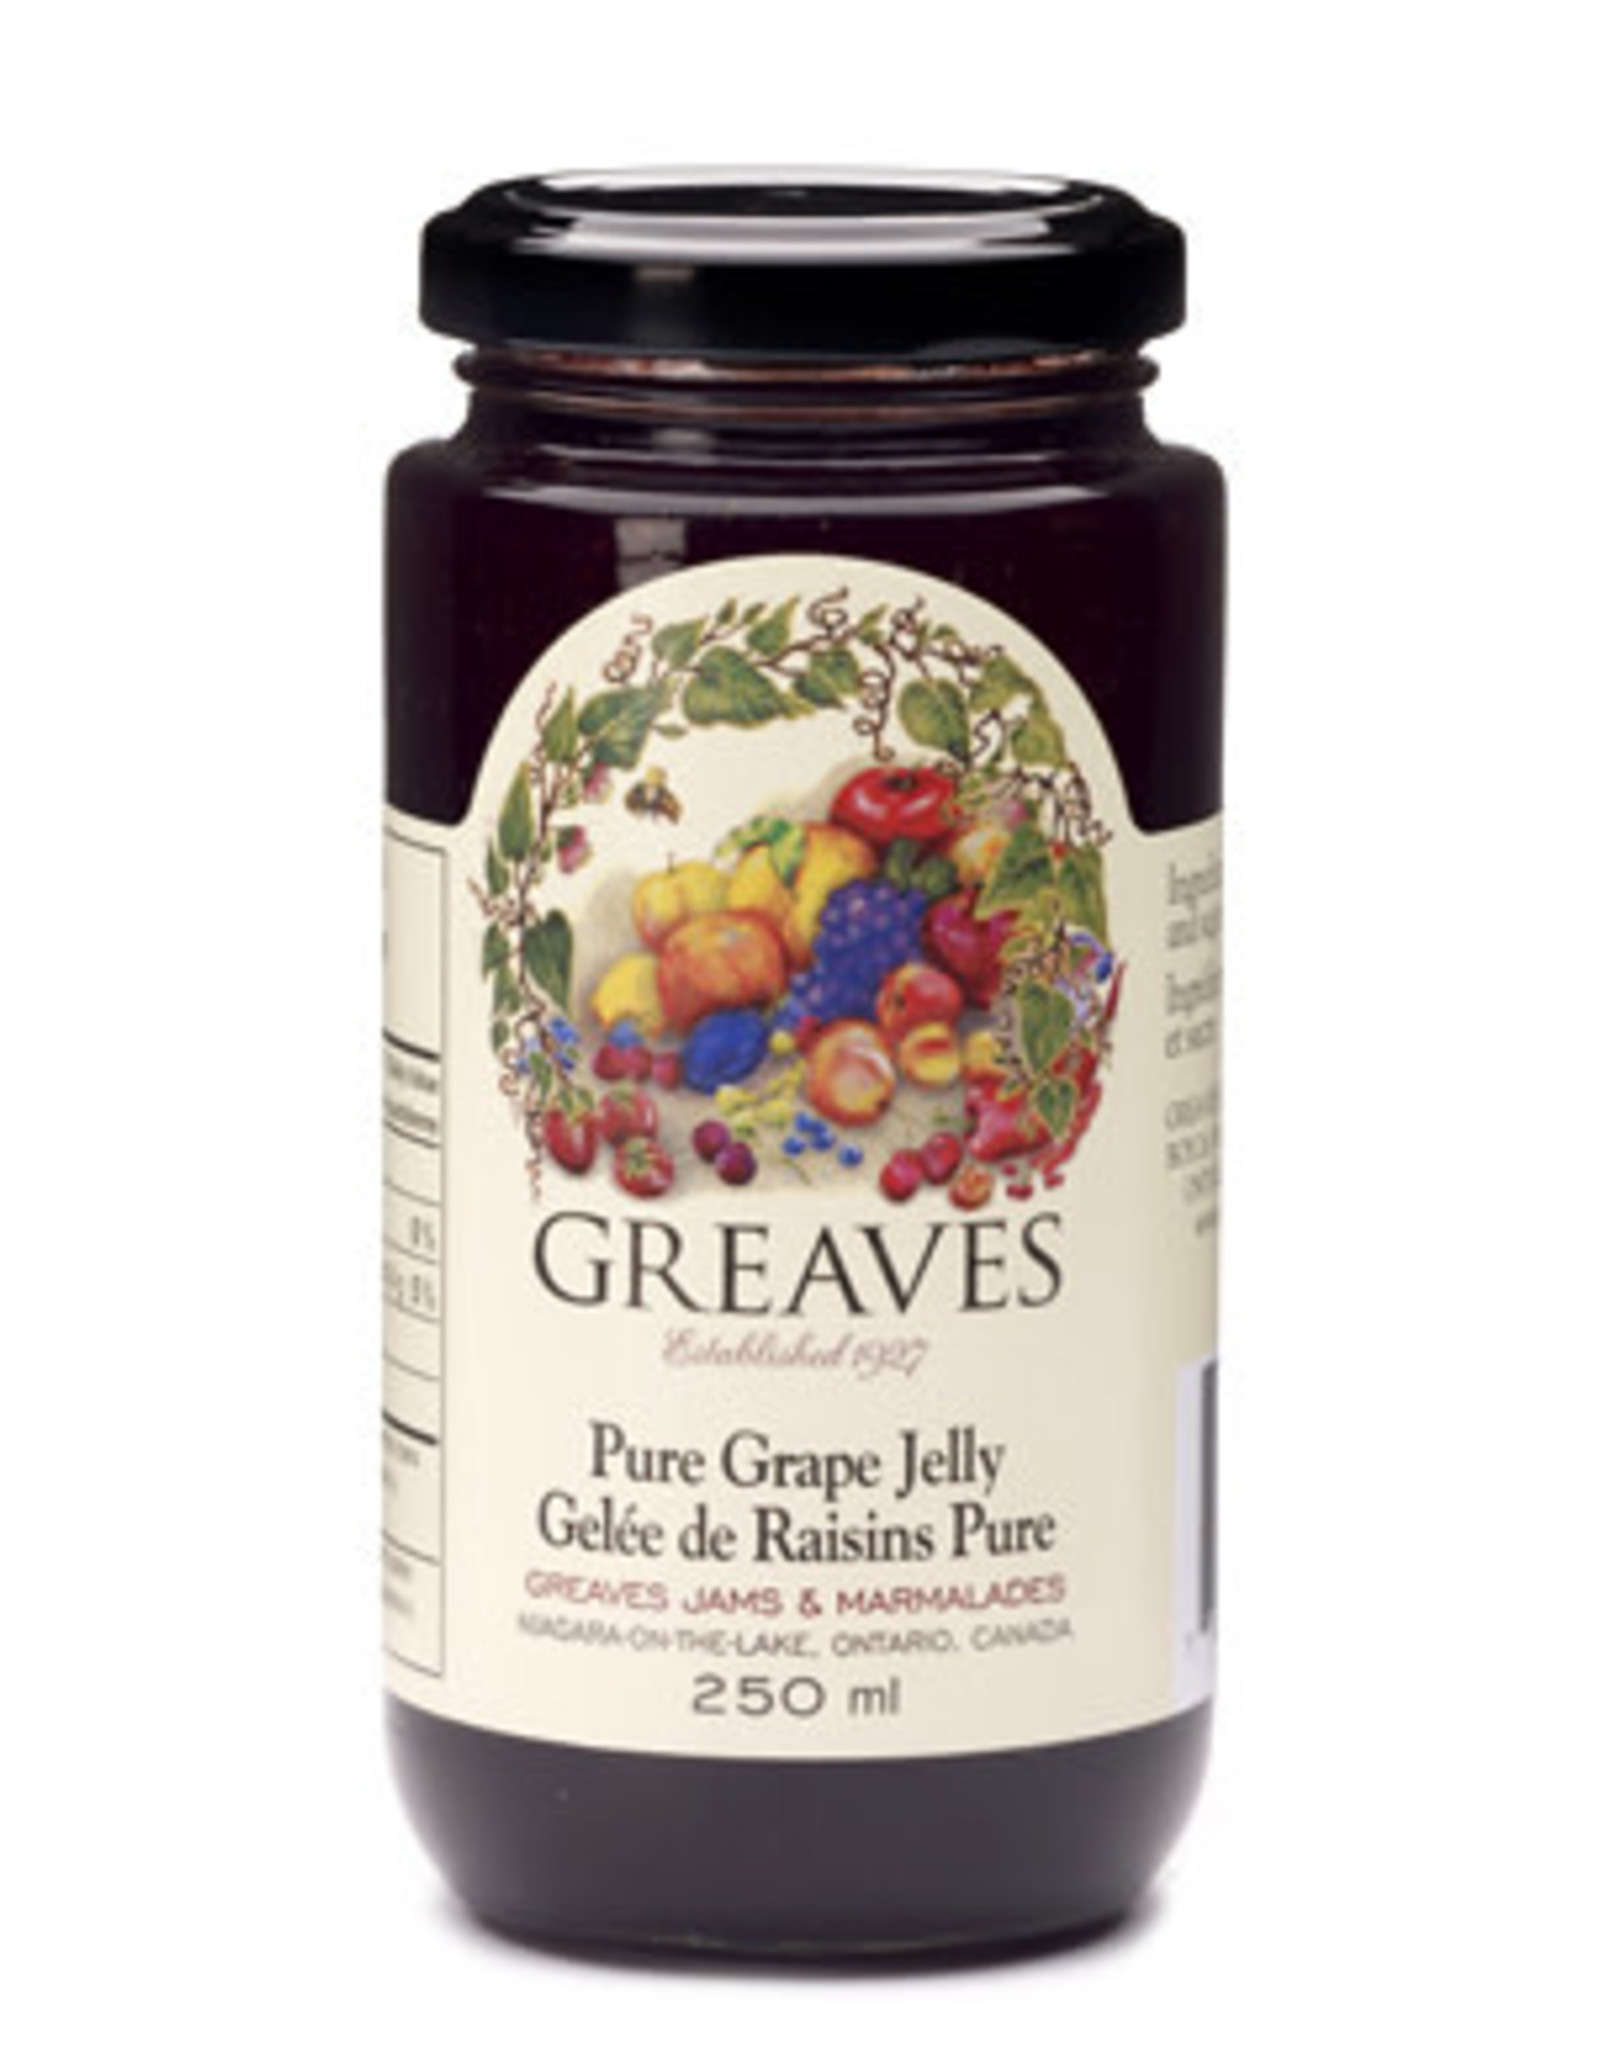 Greaves Jams & Marmalades Ltd. Greaves, Grape Jelly, 250ml